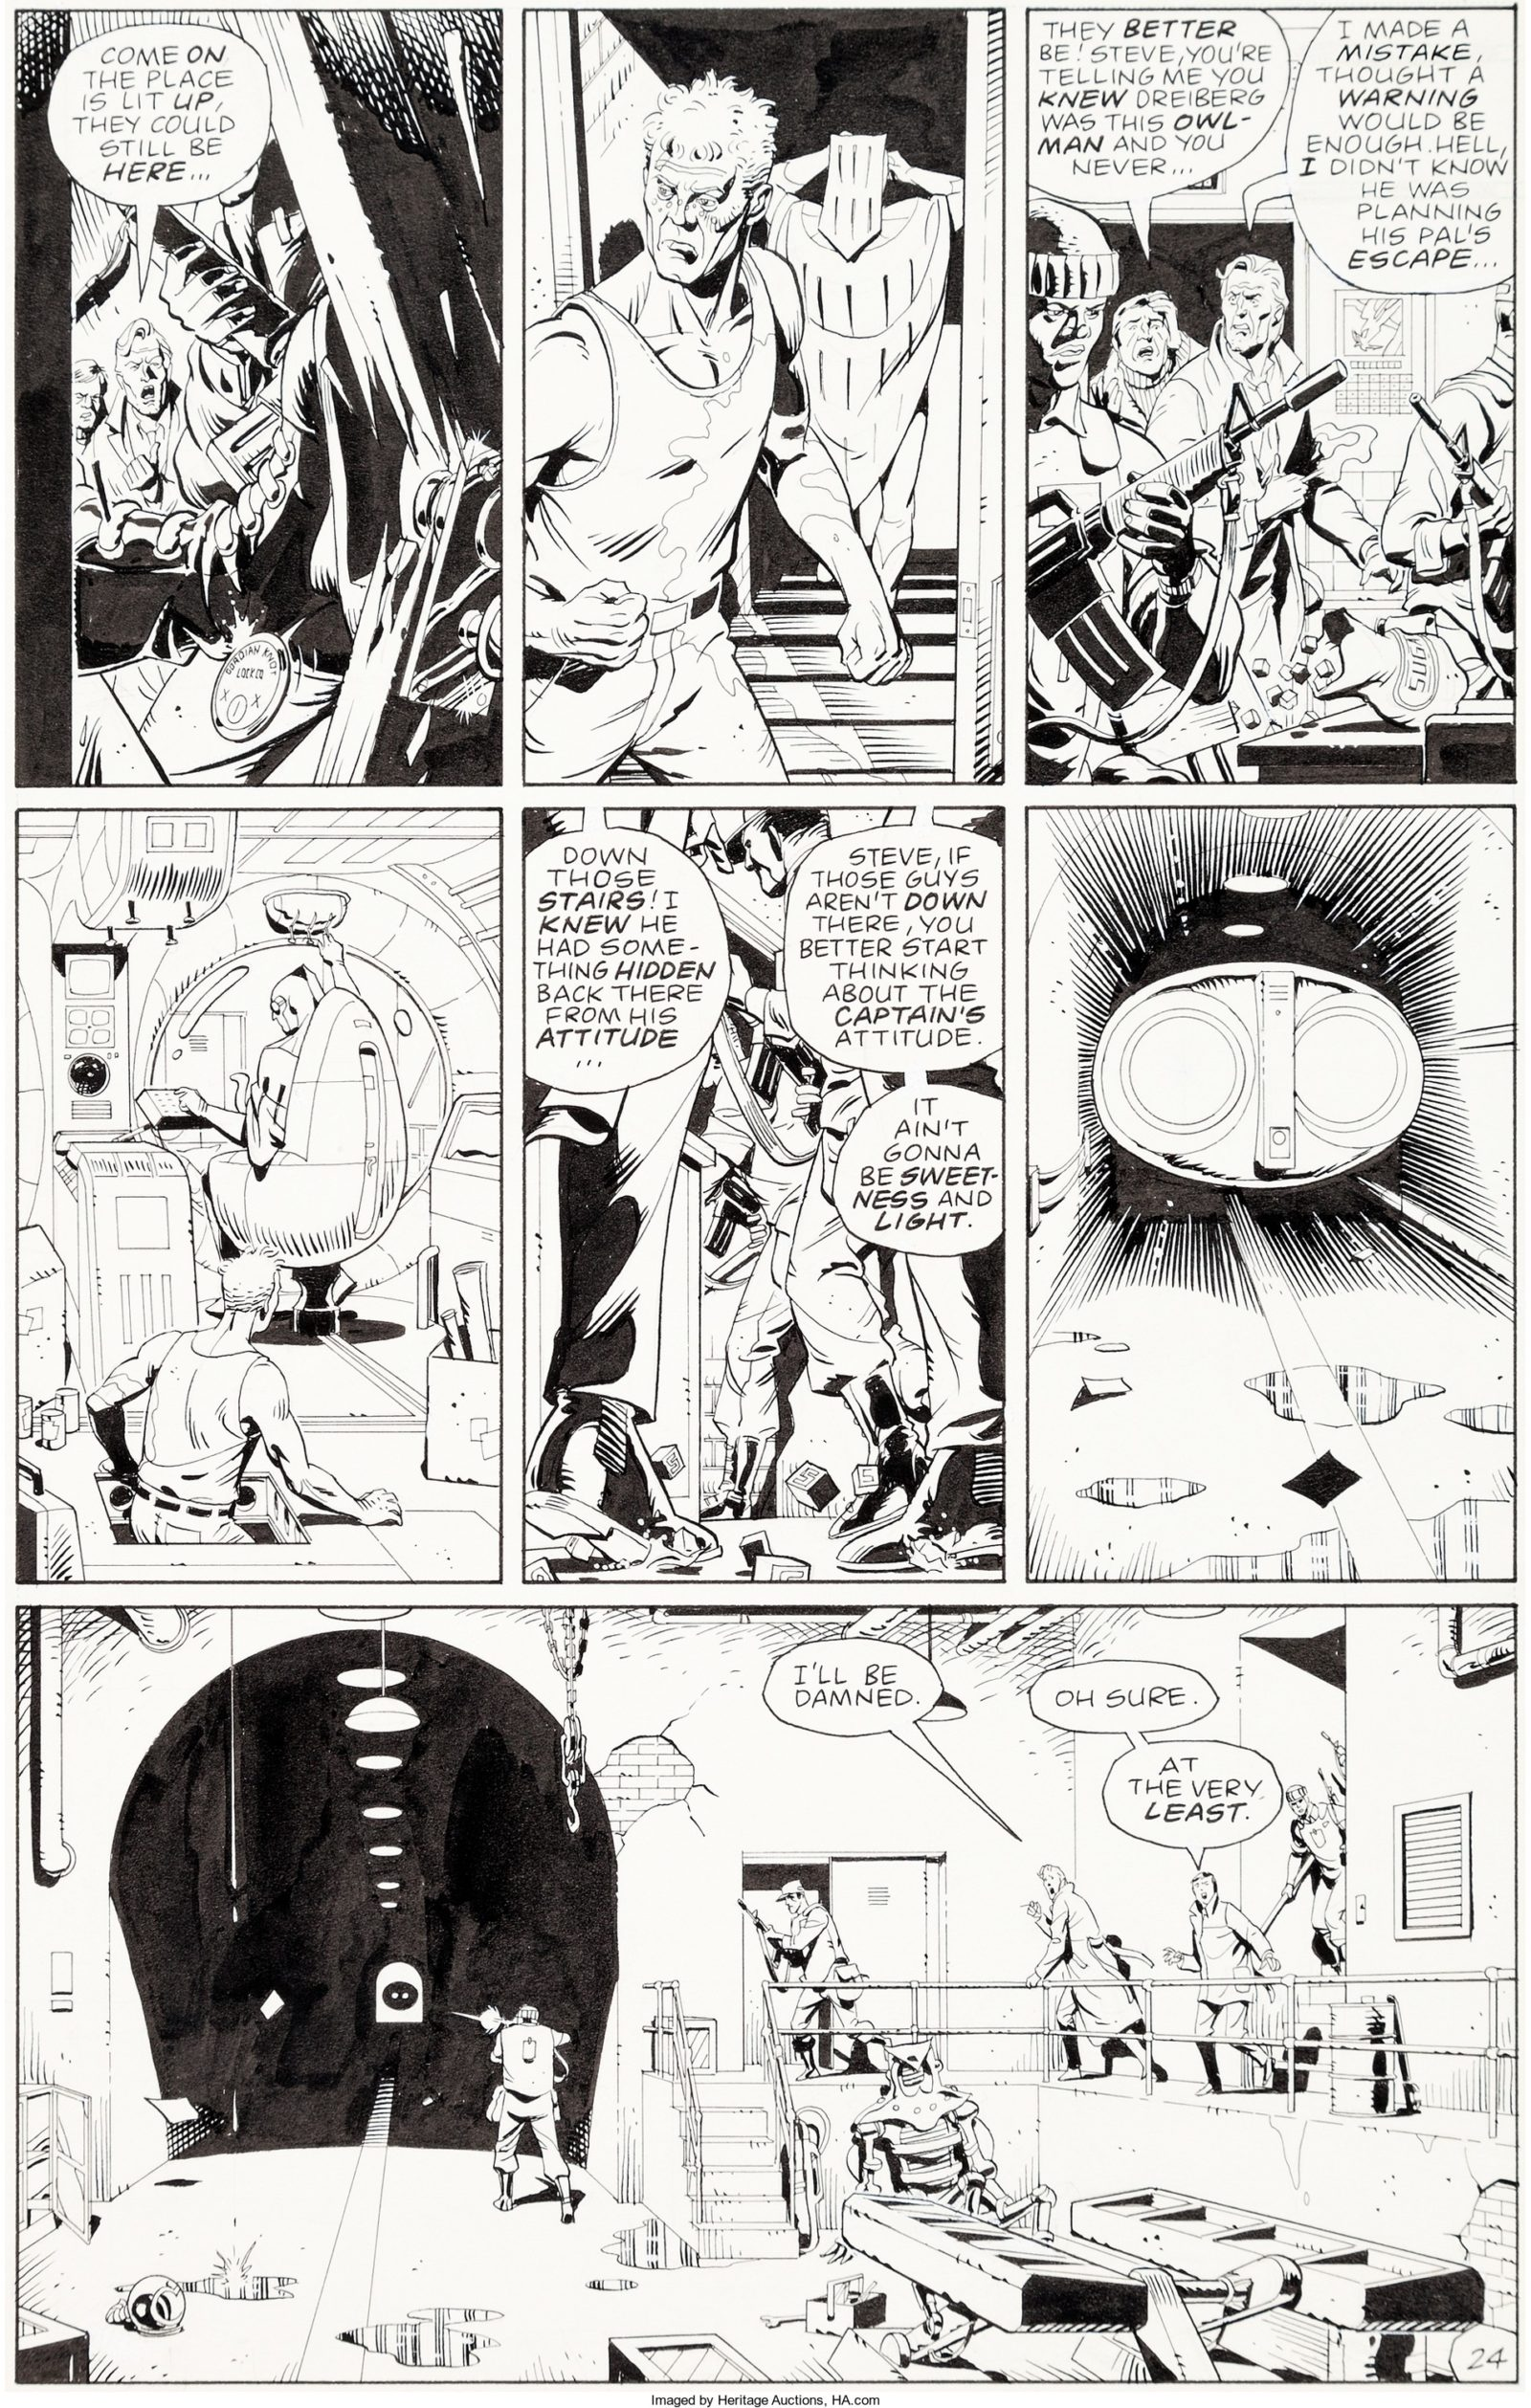 Watchmen art by Dave Gibbons (#8, Page 24)